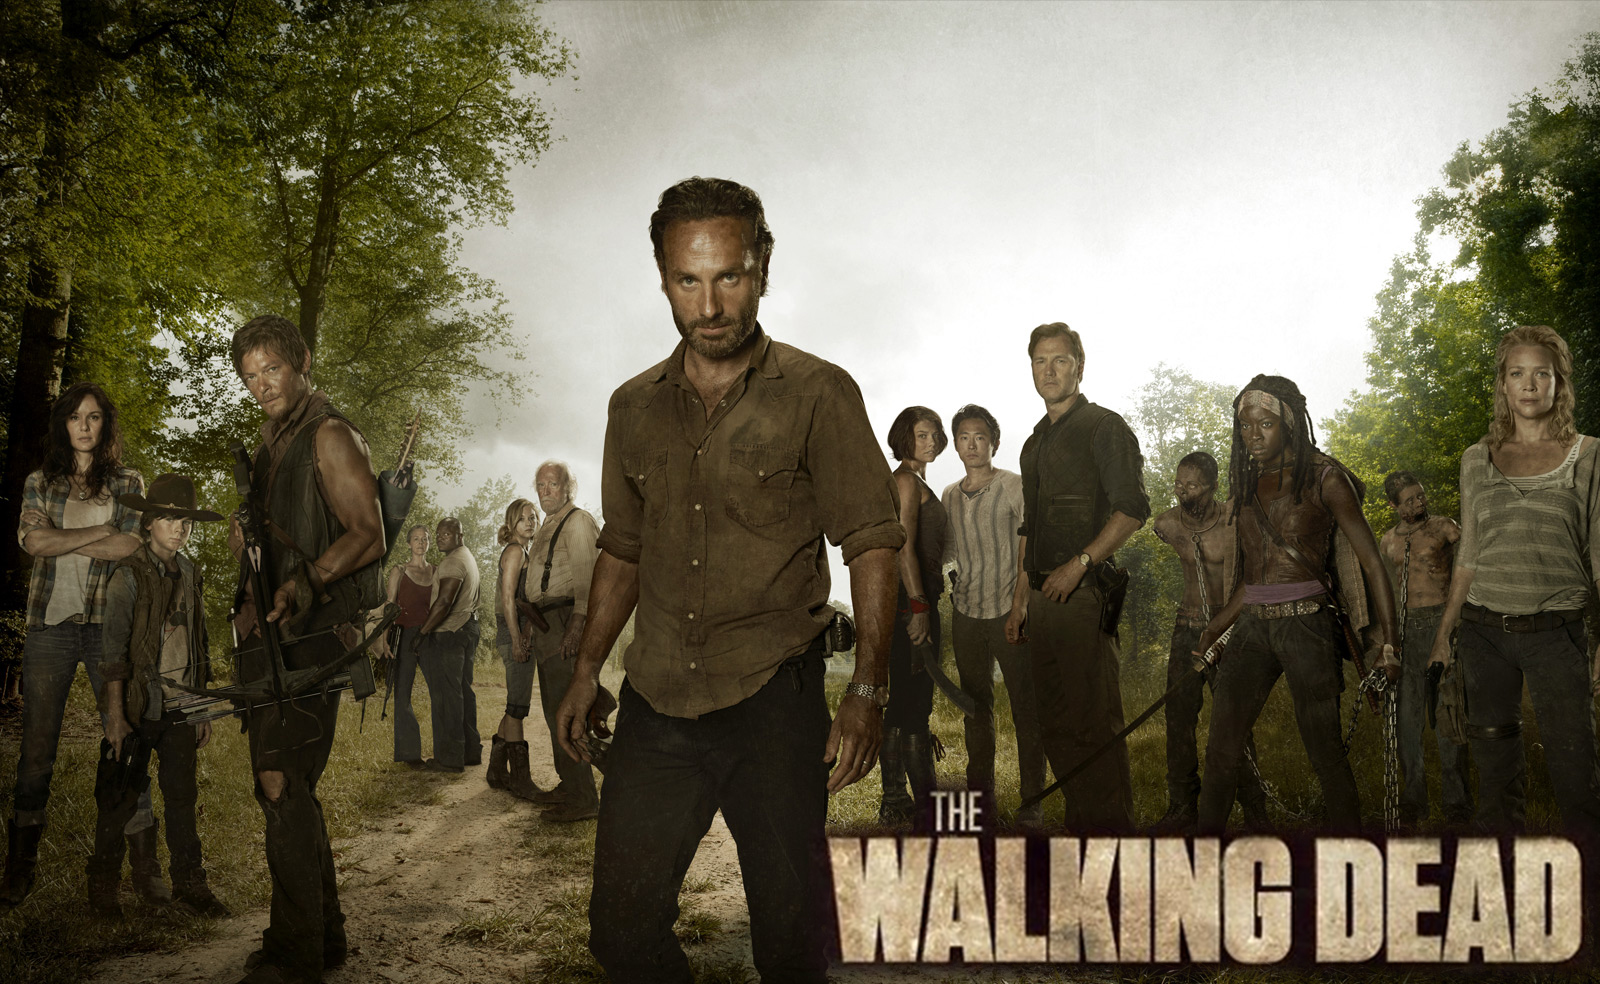 THE WALKING DEAD: terminó la tercera temporada